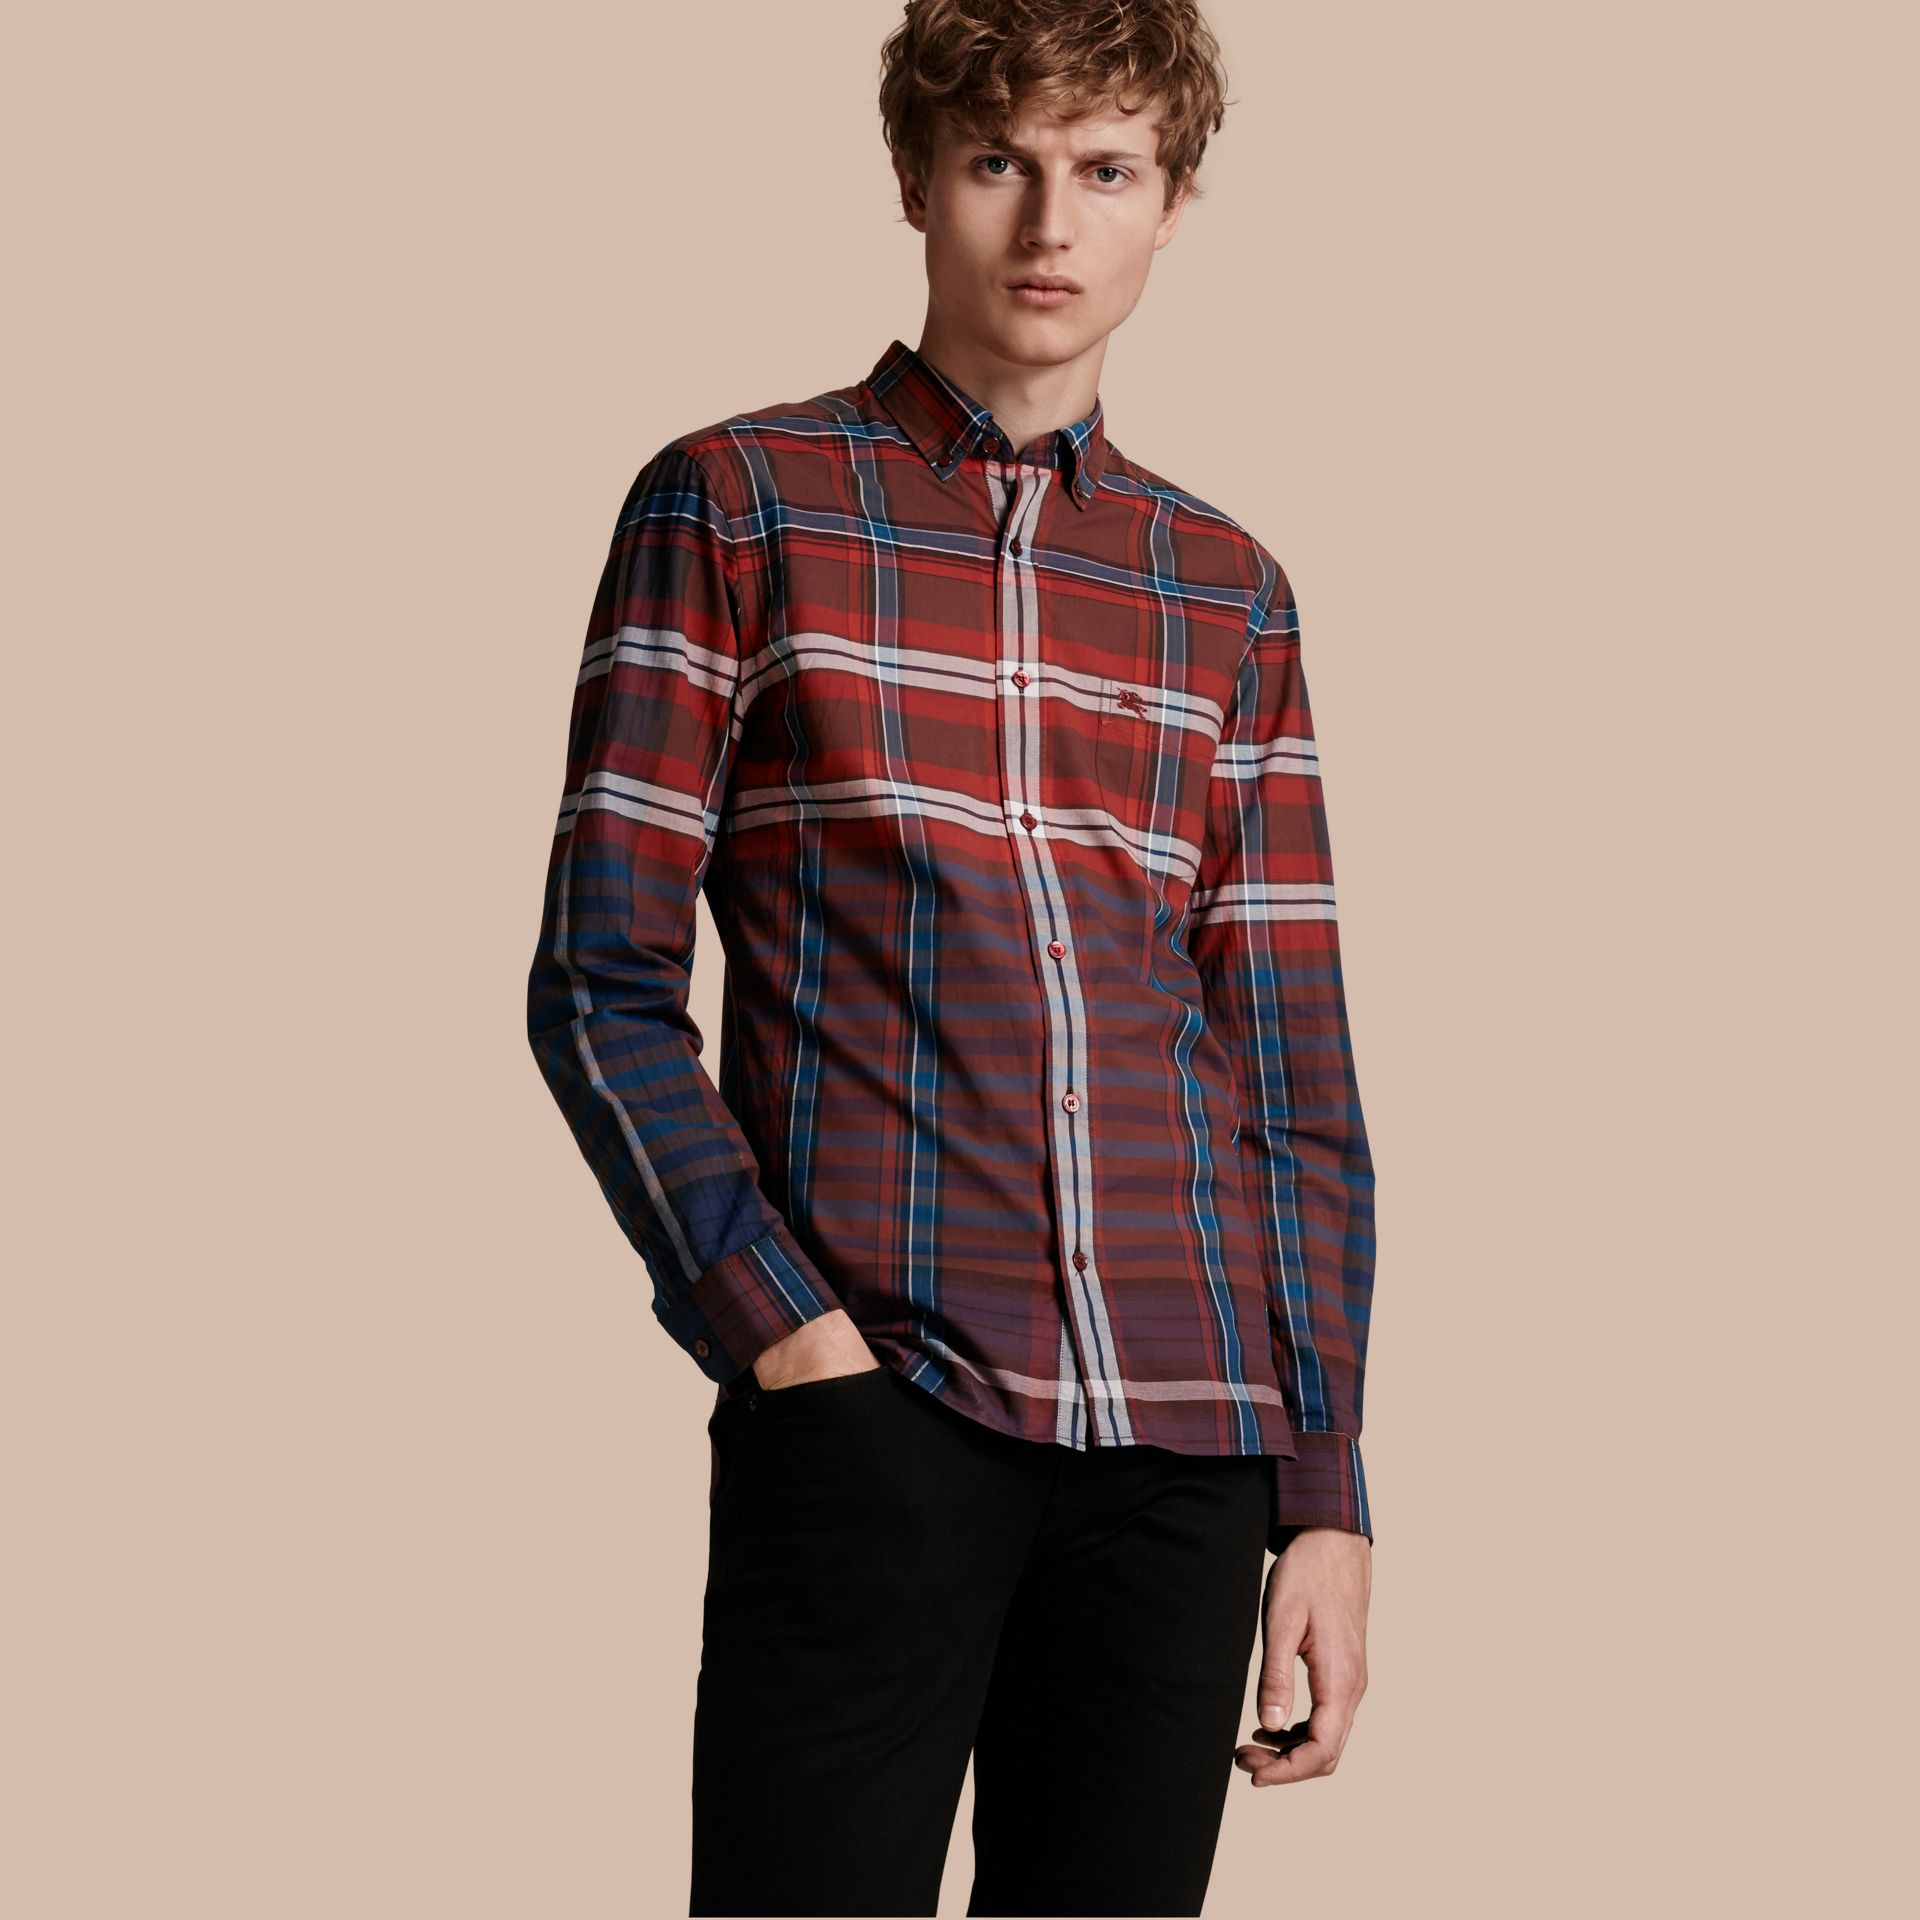 Burgundy red Button-down Collar Check Cotton Shirt Burgundy Red - gallery image 1